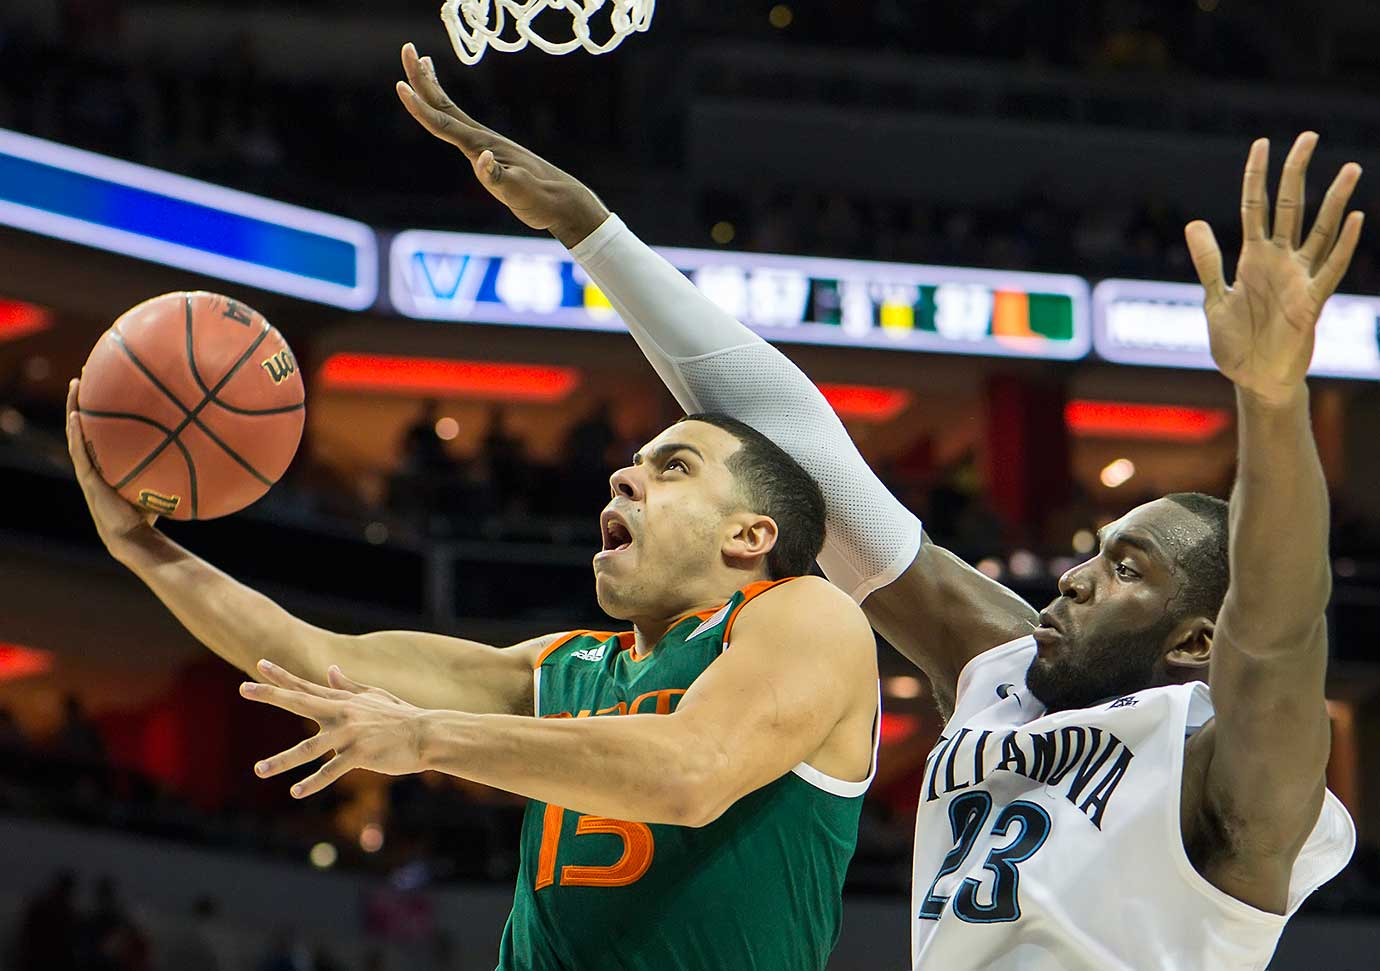 Miami's Angel Rodriguez drives to the basket past Villanova's Daniel Ochefu.